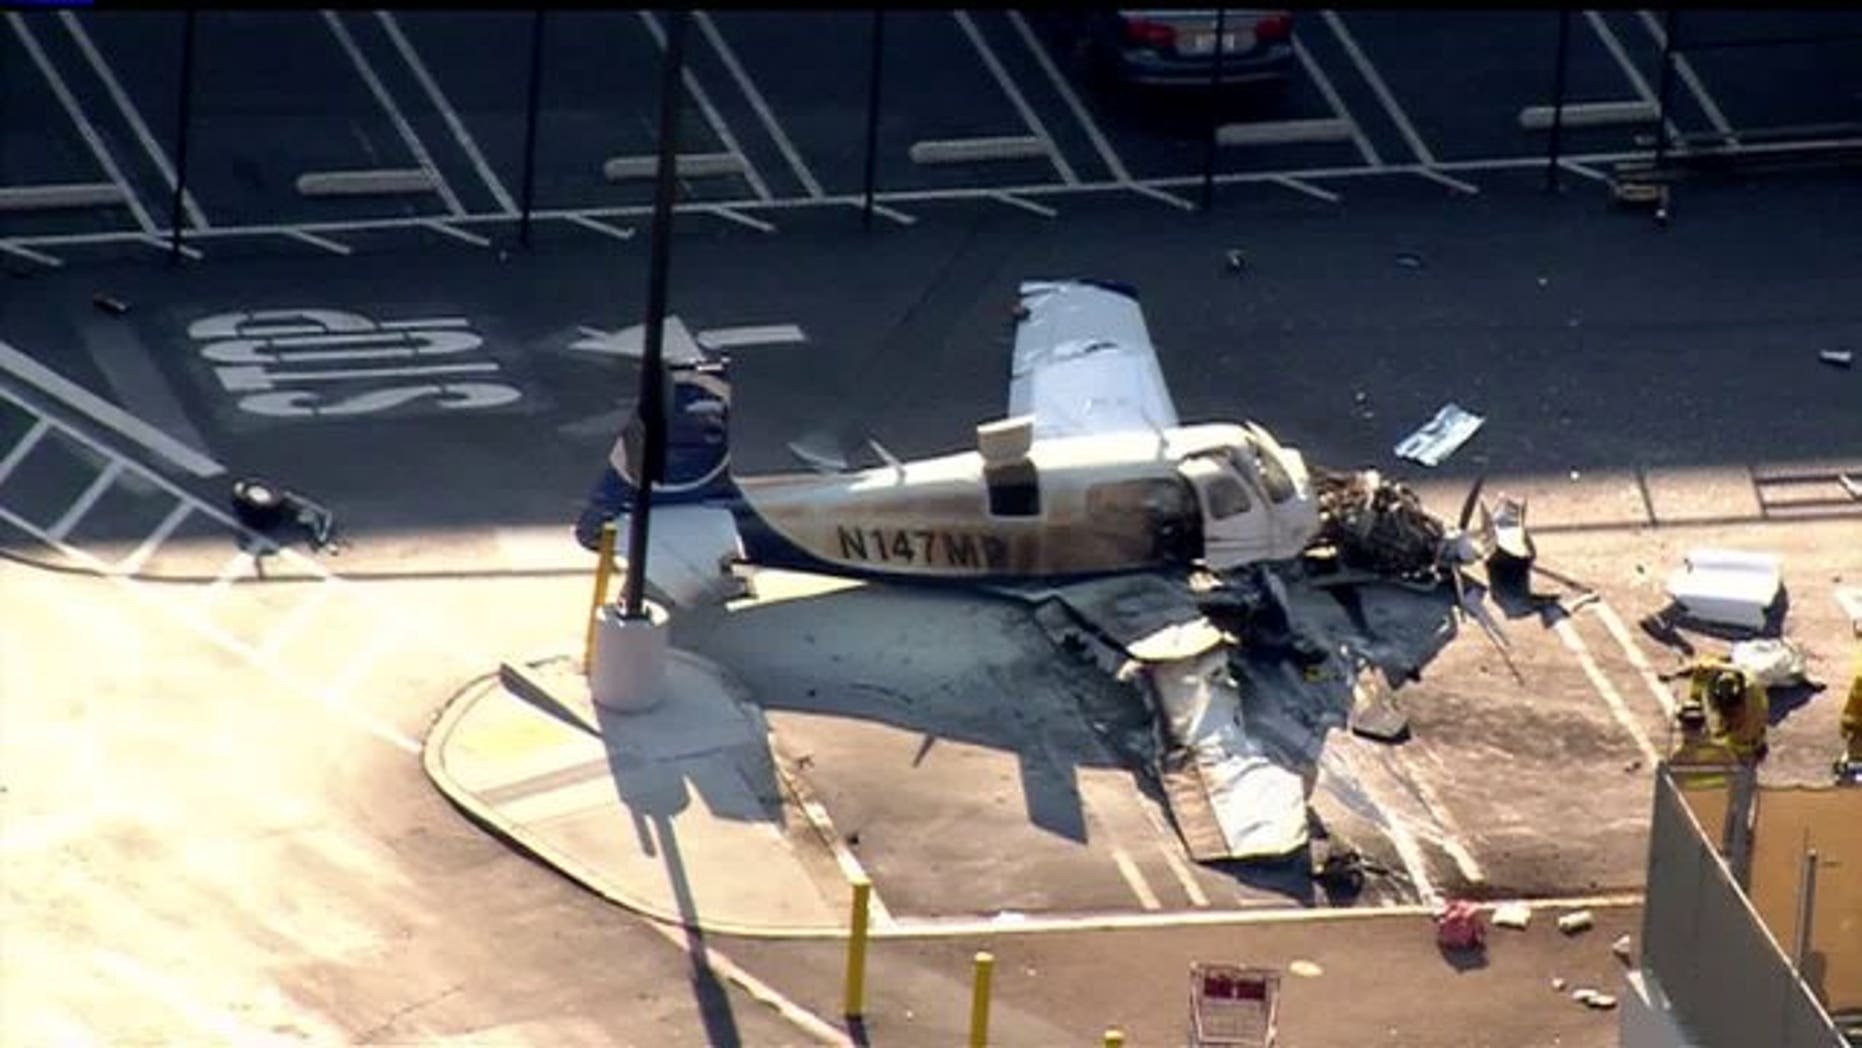 July 30, 2014: The wreckage of a small plane is shown in a Costco parking lot in San Diego. (Courtesy Fox5SanDiego.com)